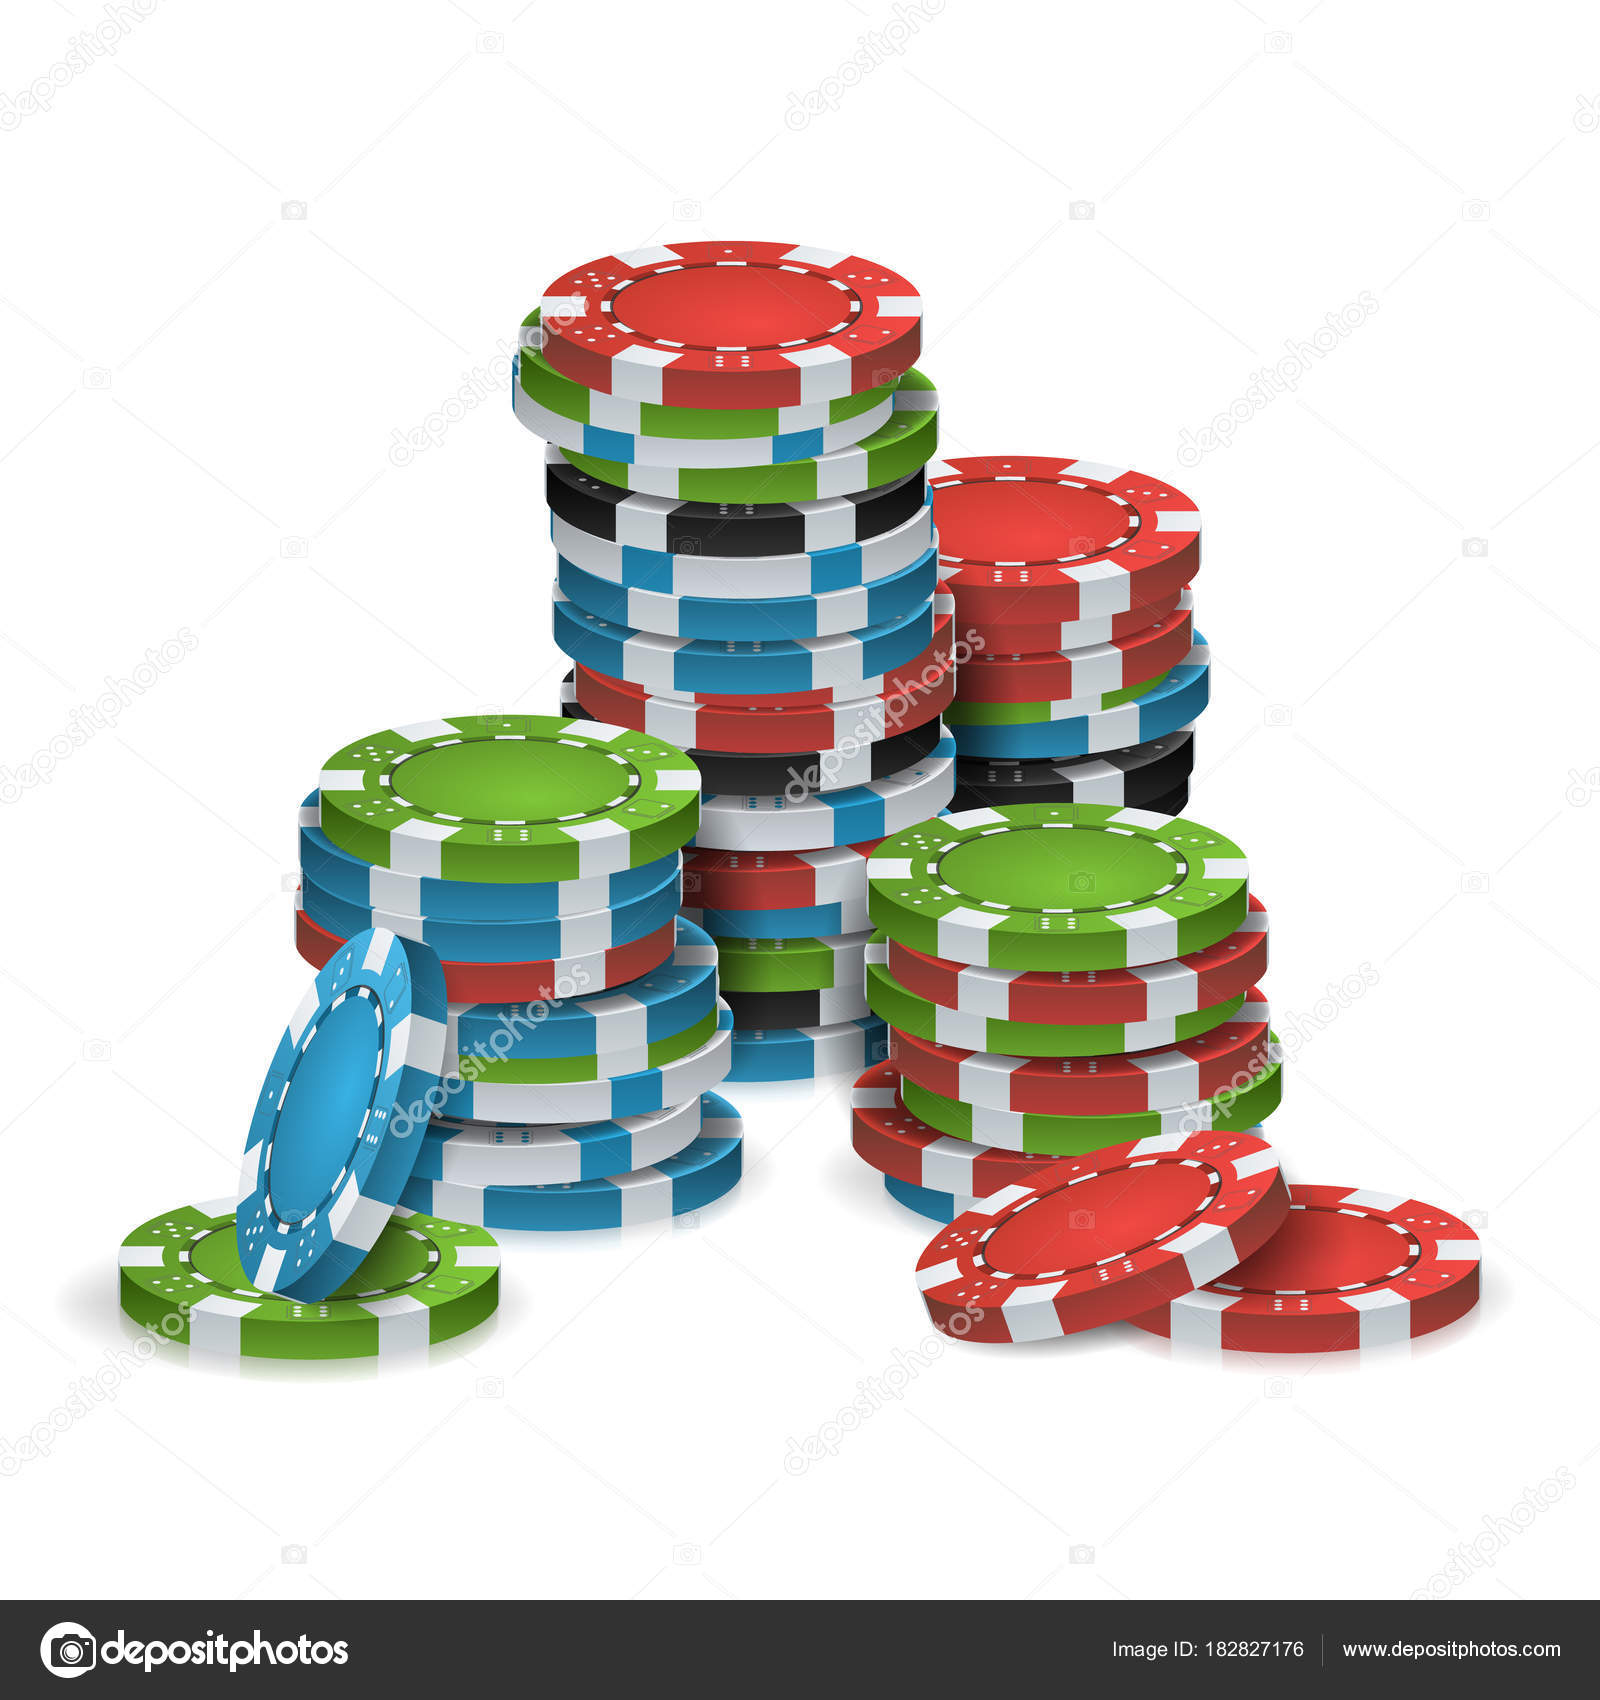 Poker Chips Stacks Vector. Plastic. White, Red, Black, Blue, Green ...